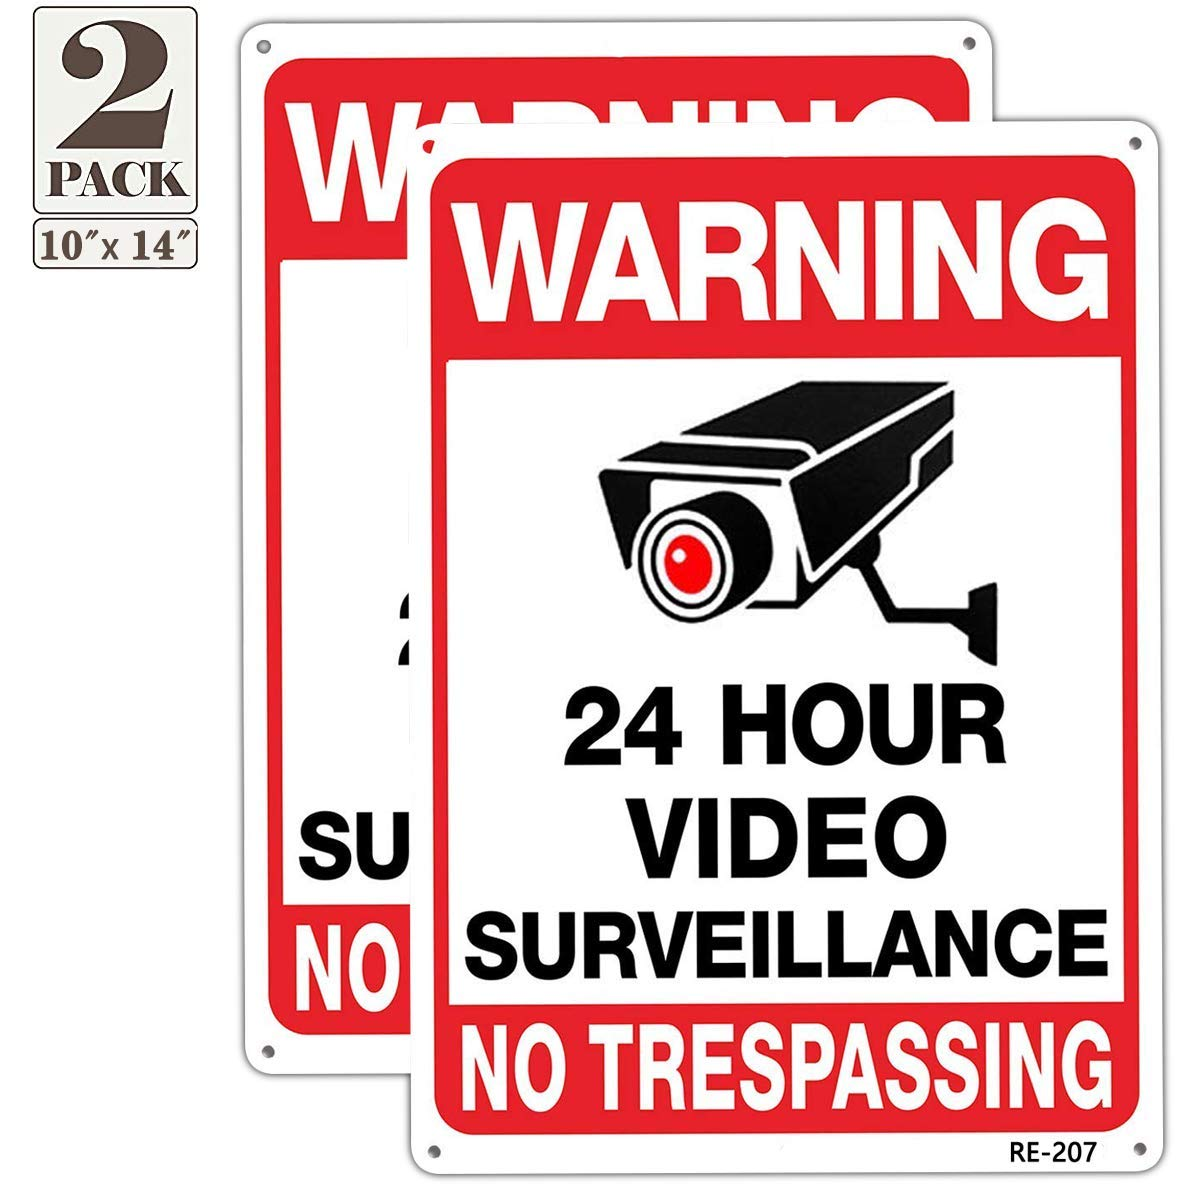 Warning No Trespassing Sign,Security Cameras in Use 24 Hour Video Surveillance Sign 10x14 Aluminum UV Ink Printed,Durable/Weatherproof Up to 7 Years Outdoor for House and Business (2-Pack)